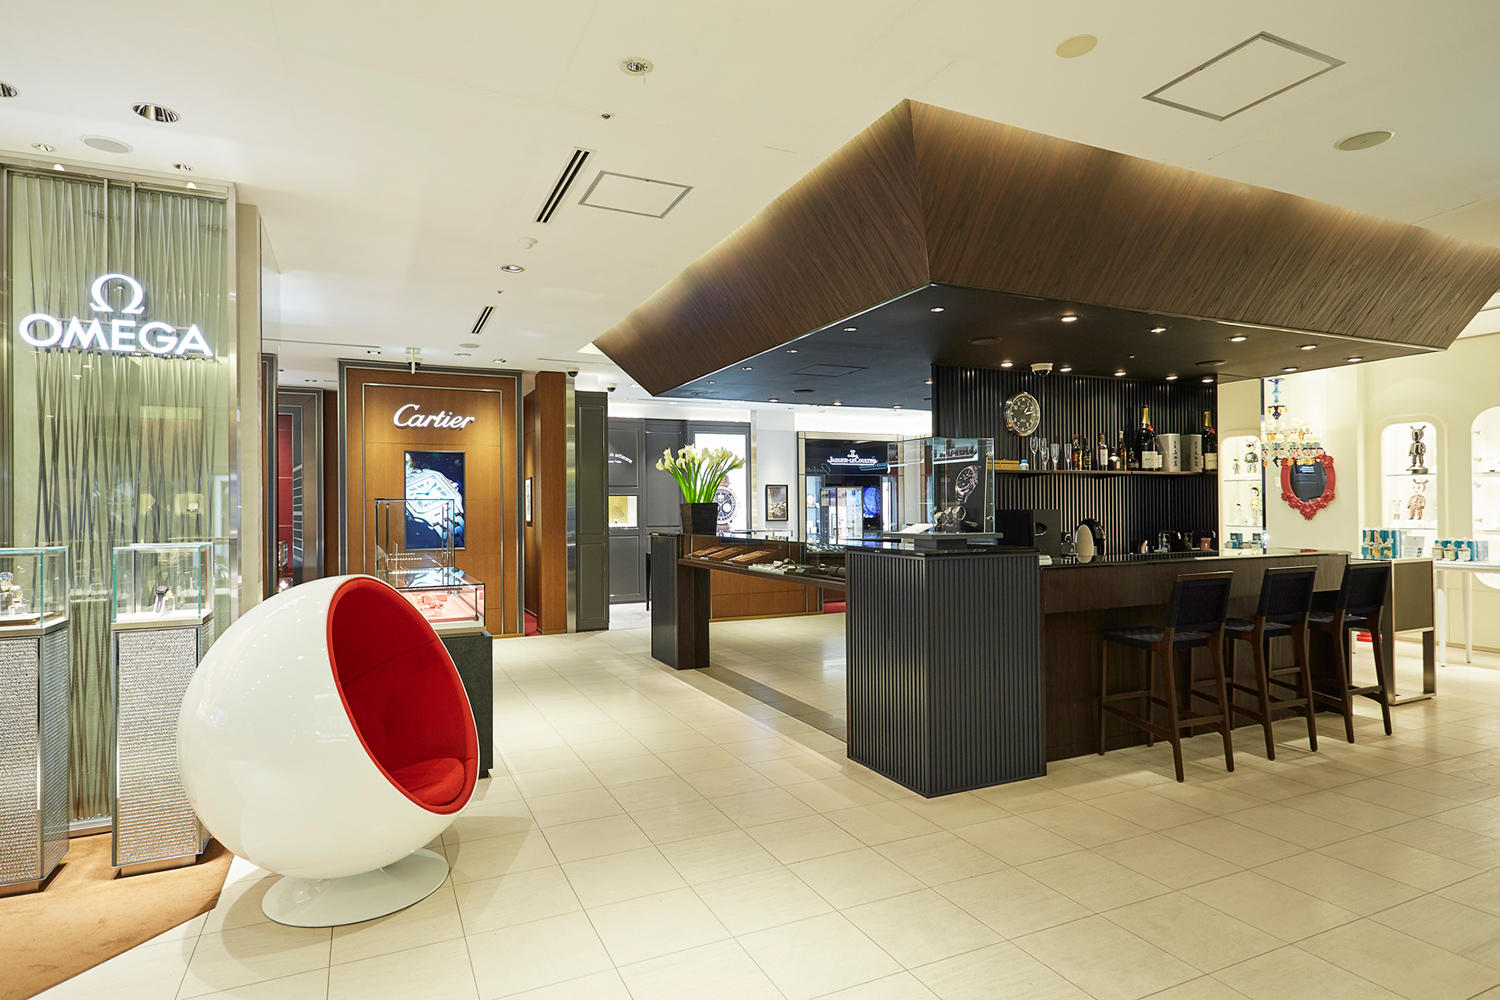 jagger associates services provided by interior designers ジャガー・ルクルトの、敢えてシンプルモデルを選ぶ